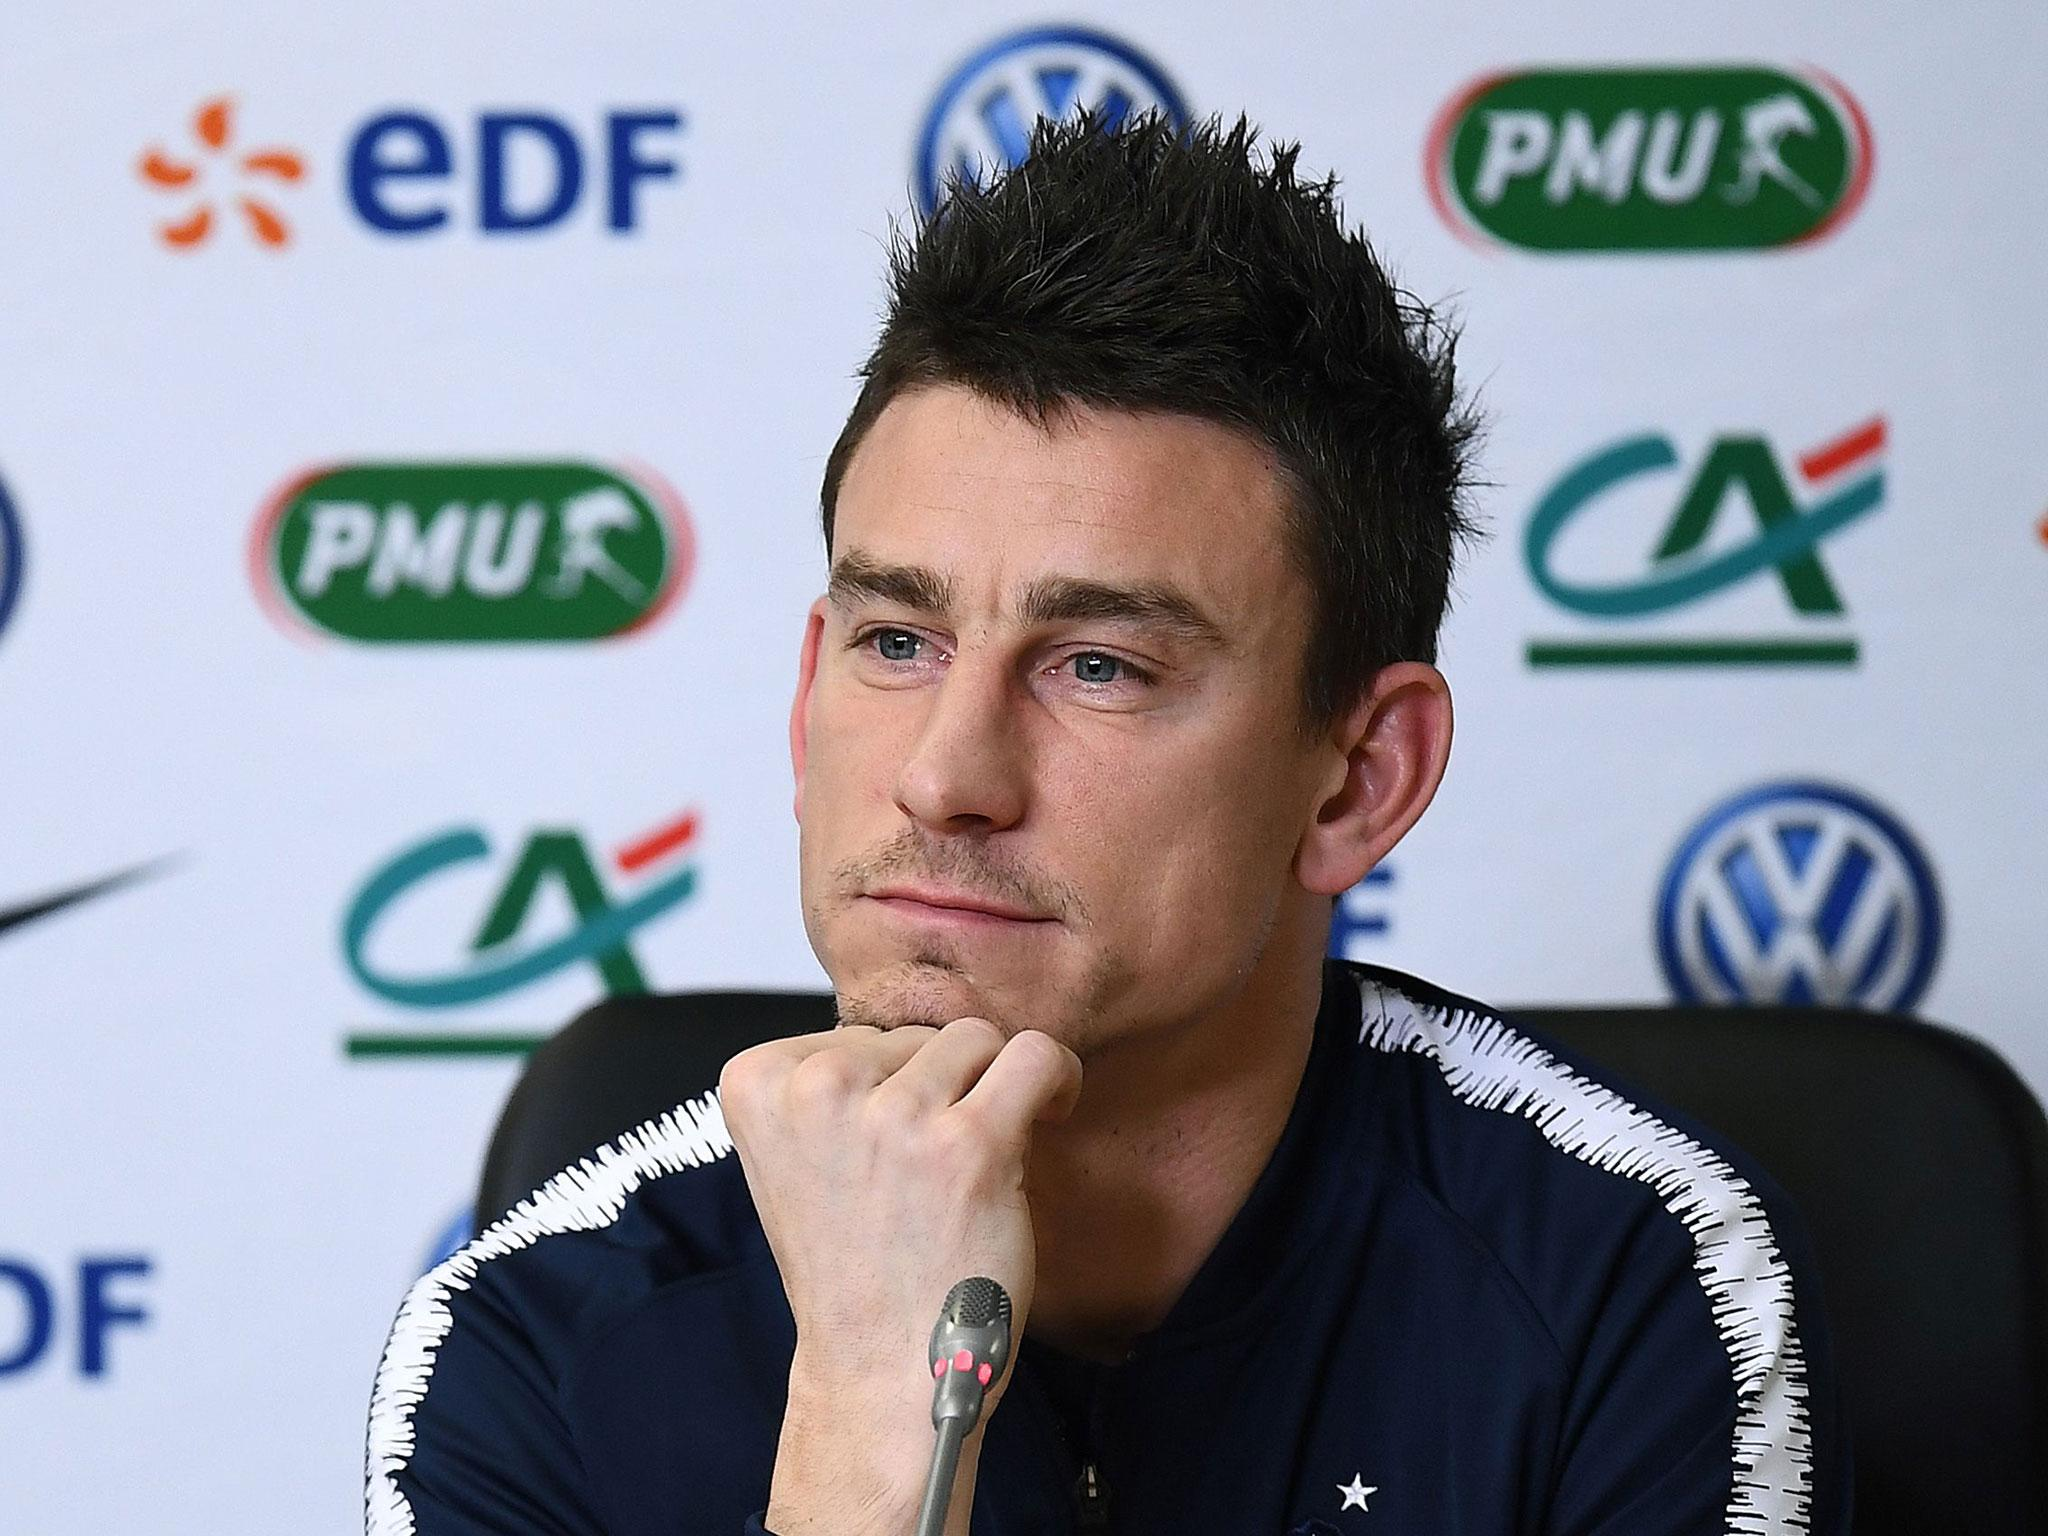 Laurent Koscielny hits out at Didier Deschamps as he reveals the torment of missing the 2018 World Cup